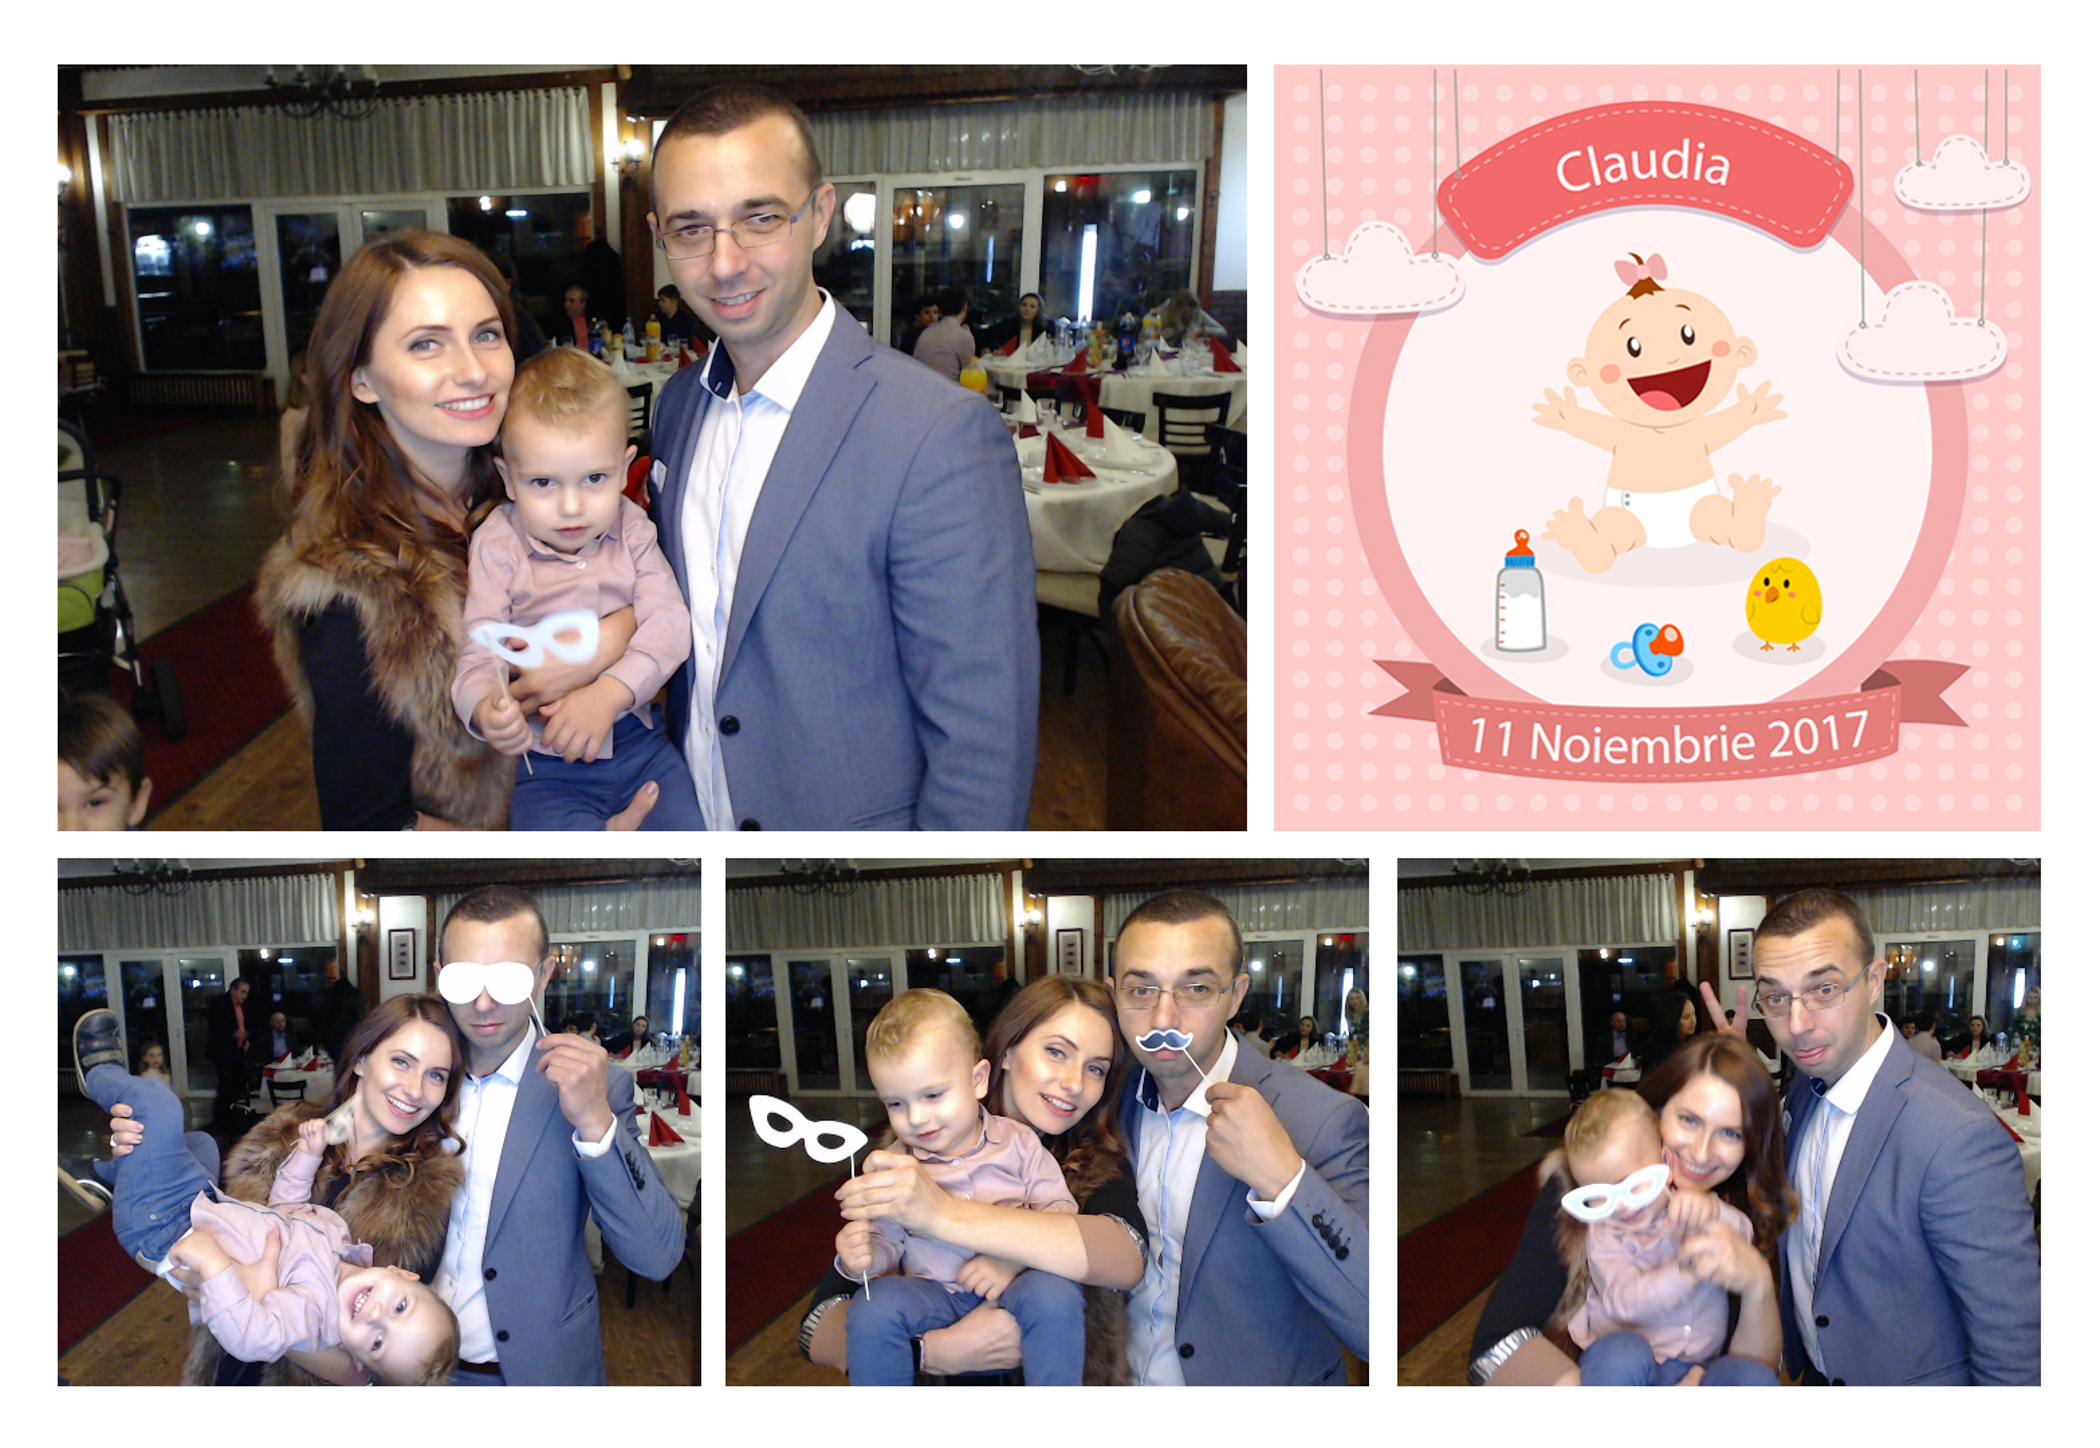 Photobooth Botez Claudia